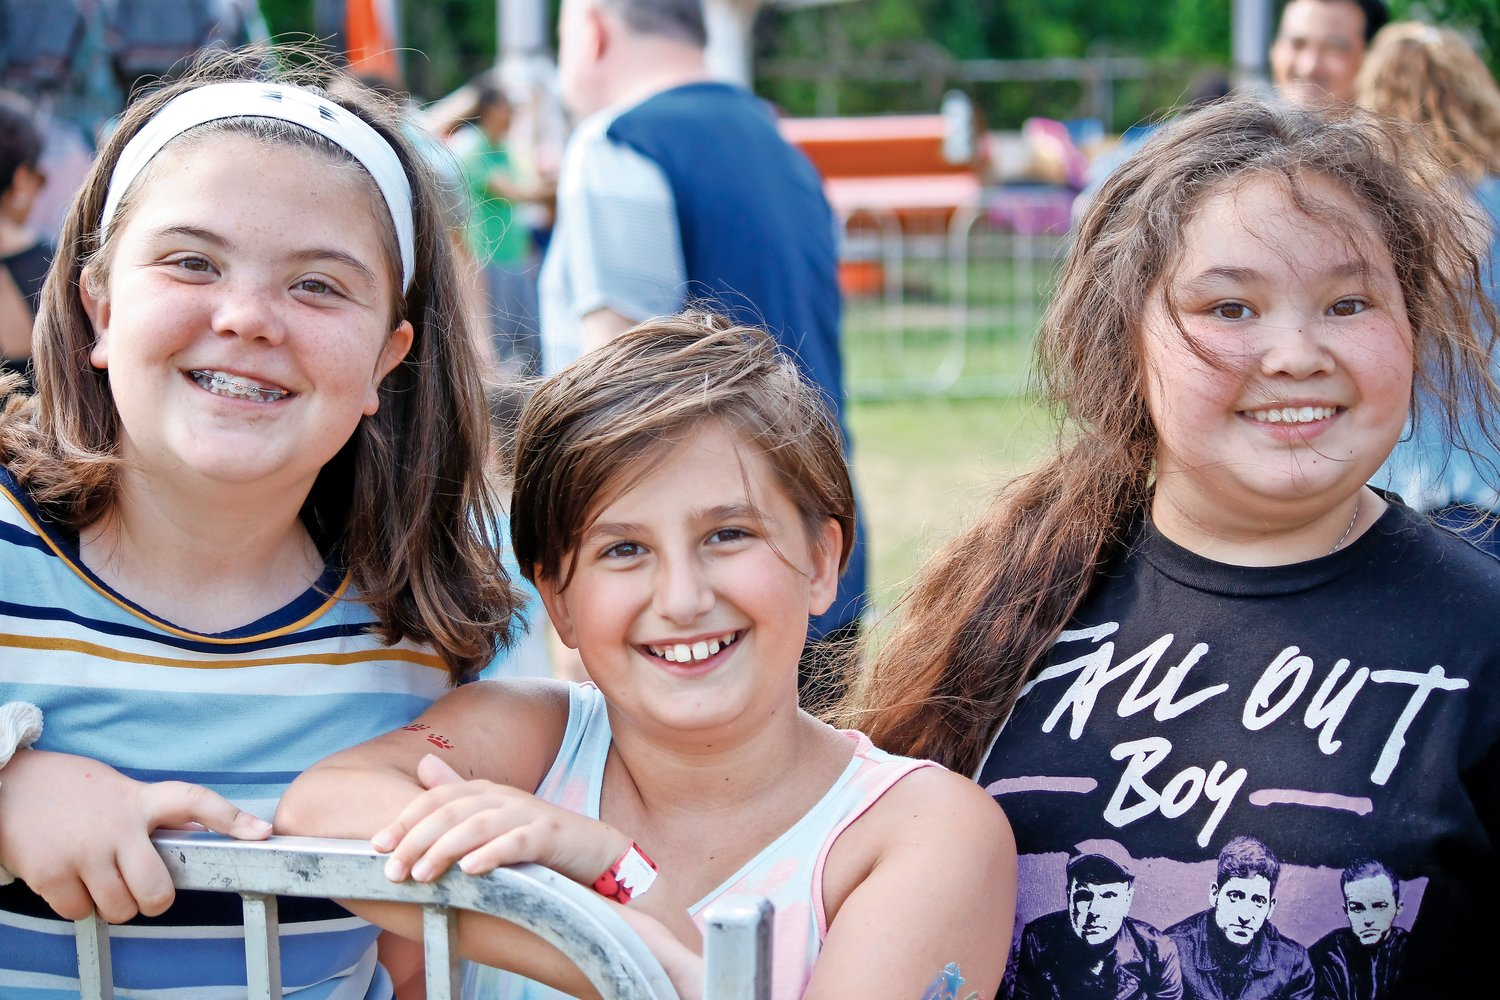 There were plenty of rides and games to enjoy at the festival. Calleigh Harten, 10, Rhea Likoka, 9, and Jade Glass, 10 said their favorite so far was the Gravitron.